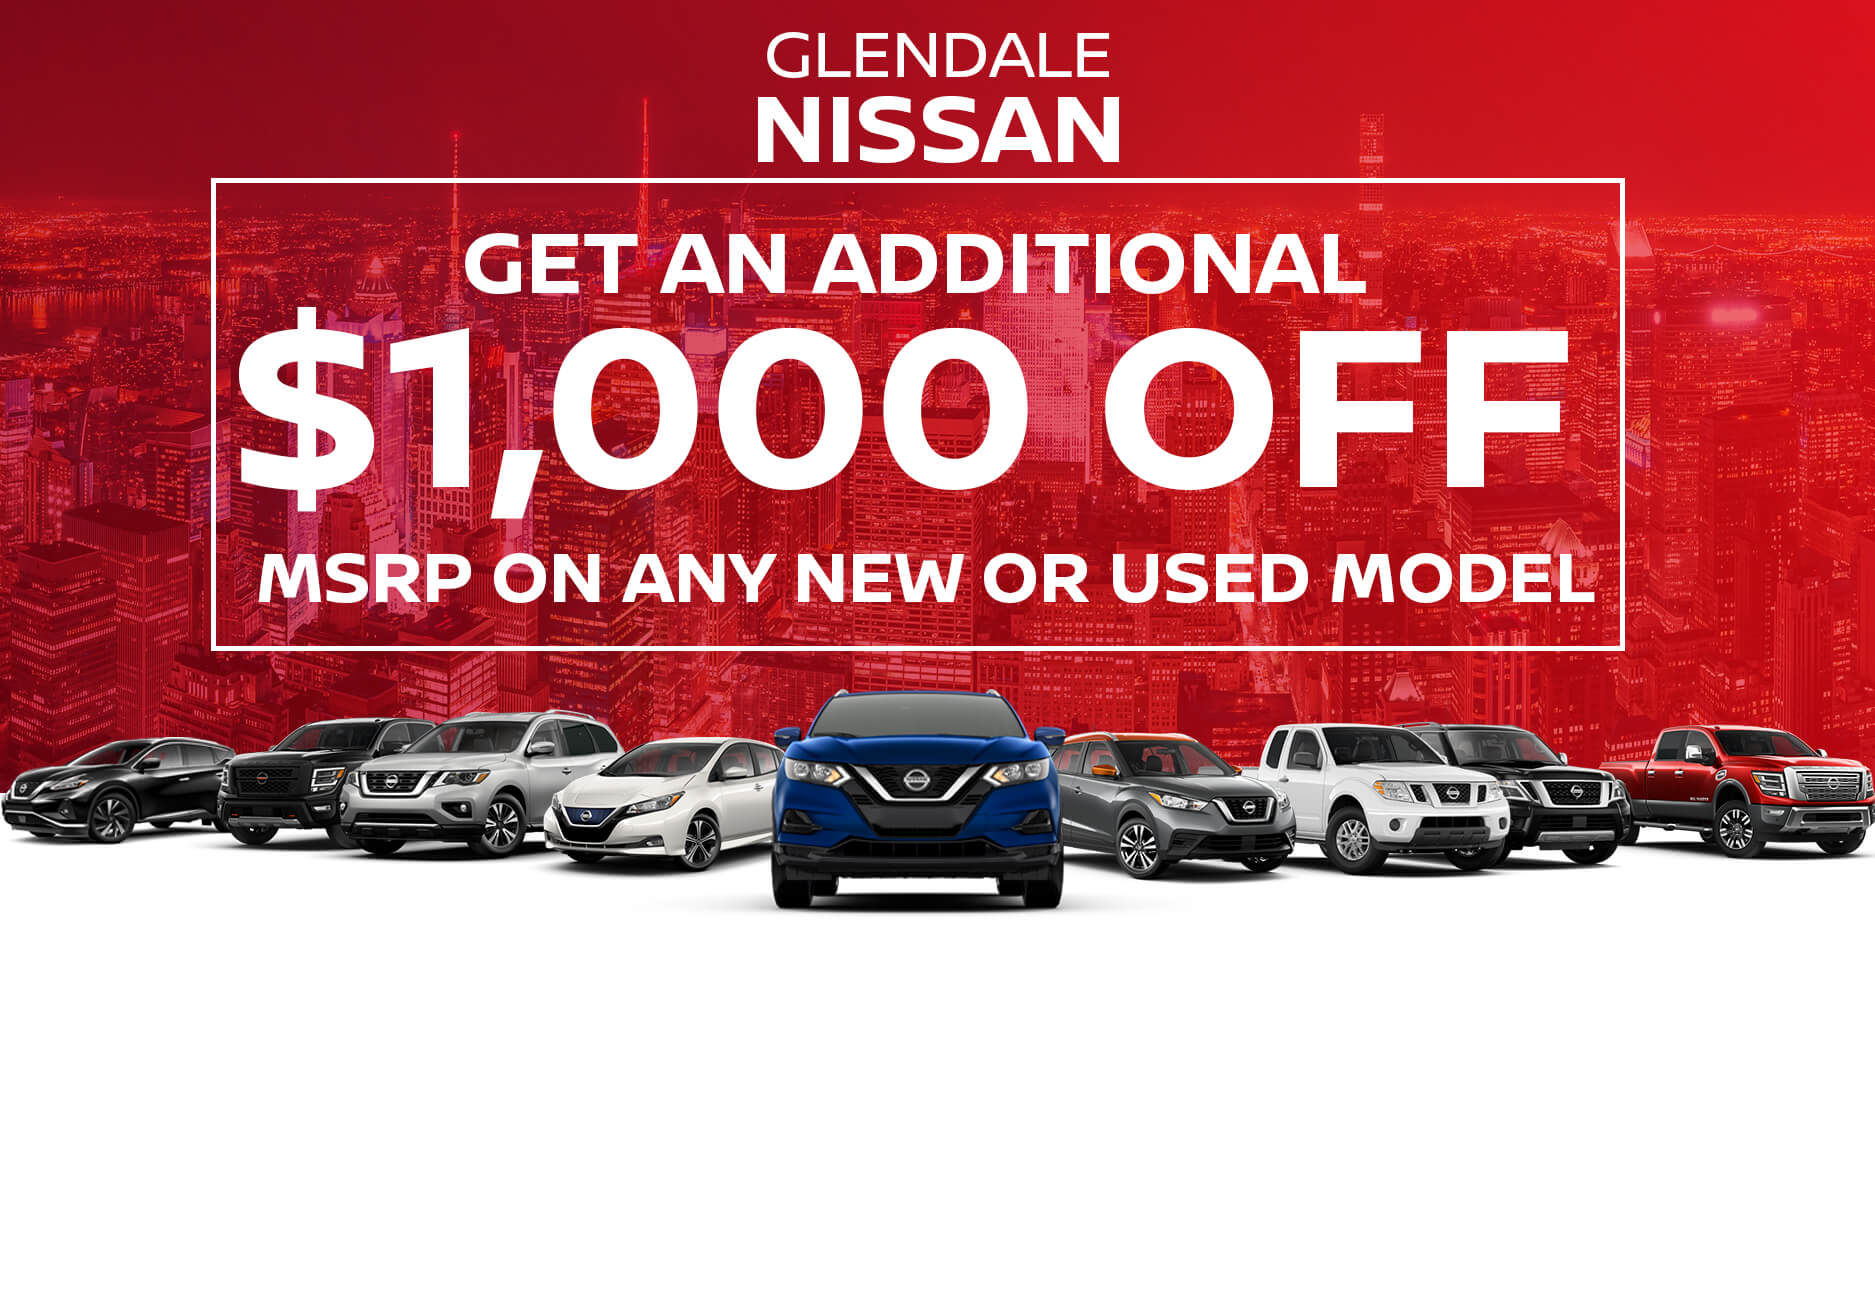 Get an Additional $1,000 OFF MSRP on any new or used vehicle